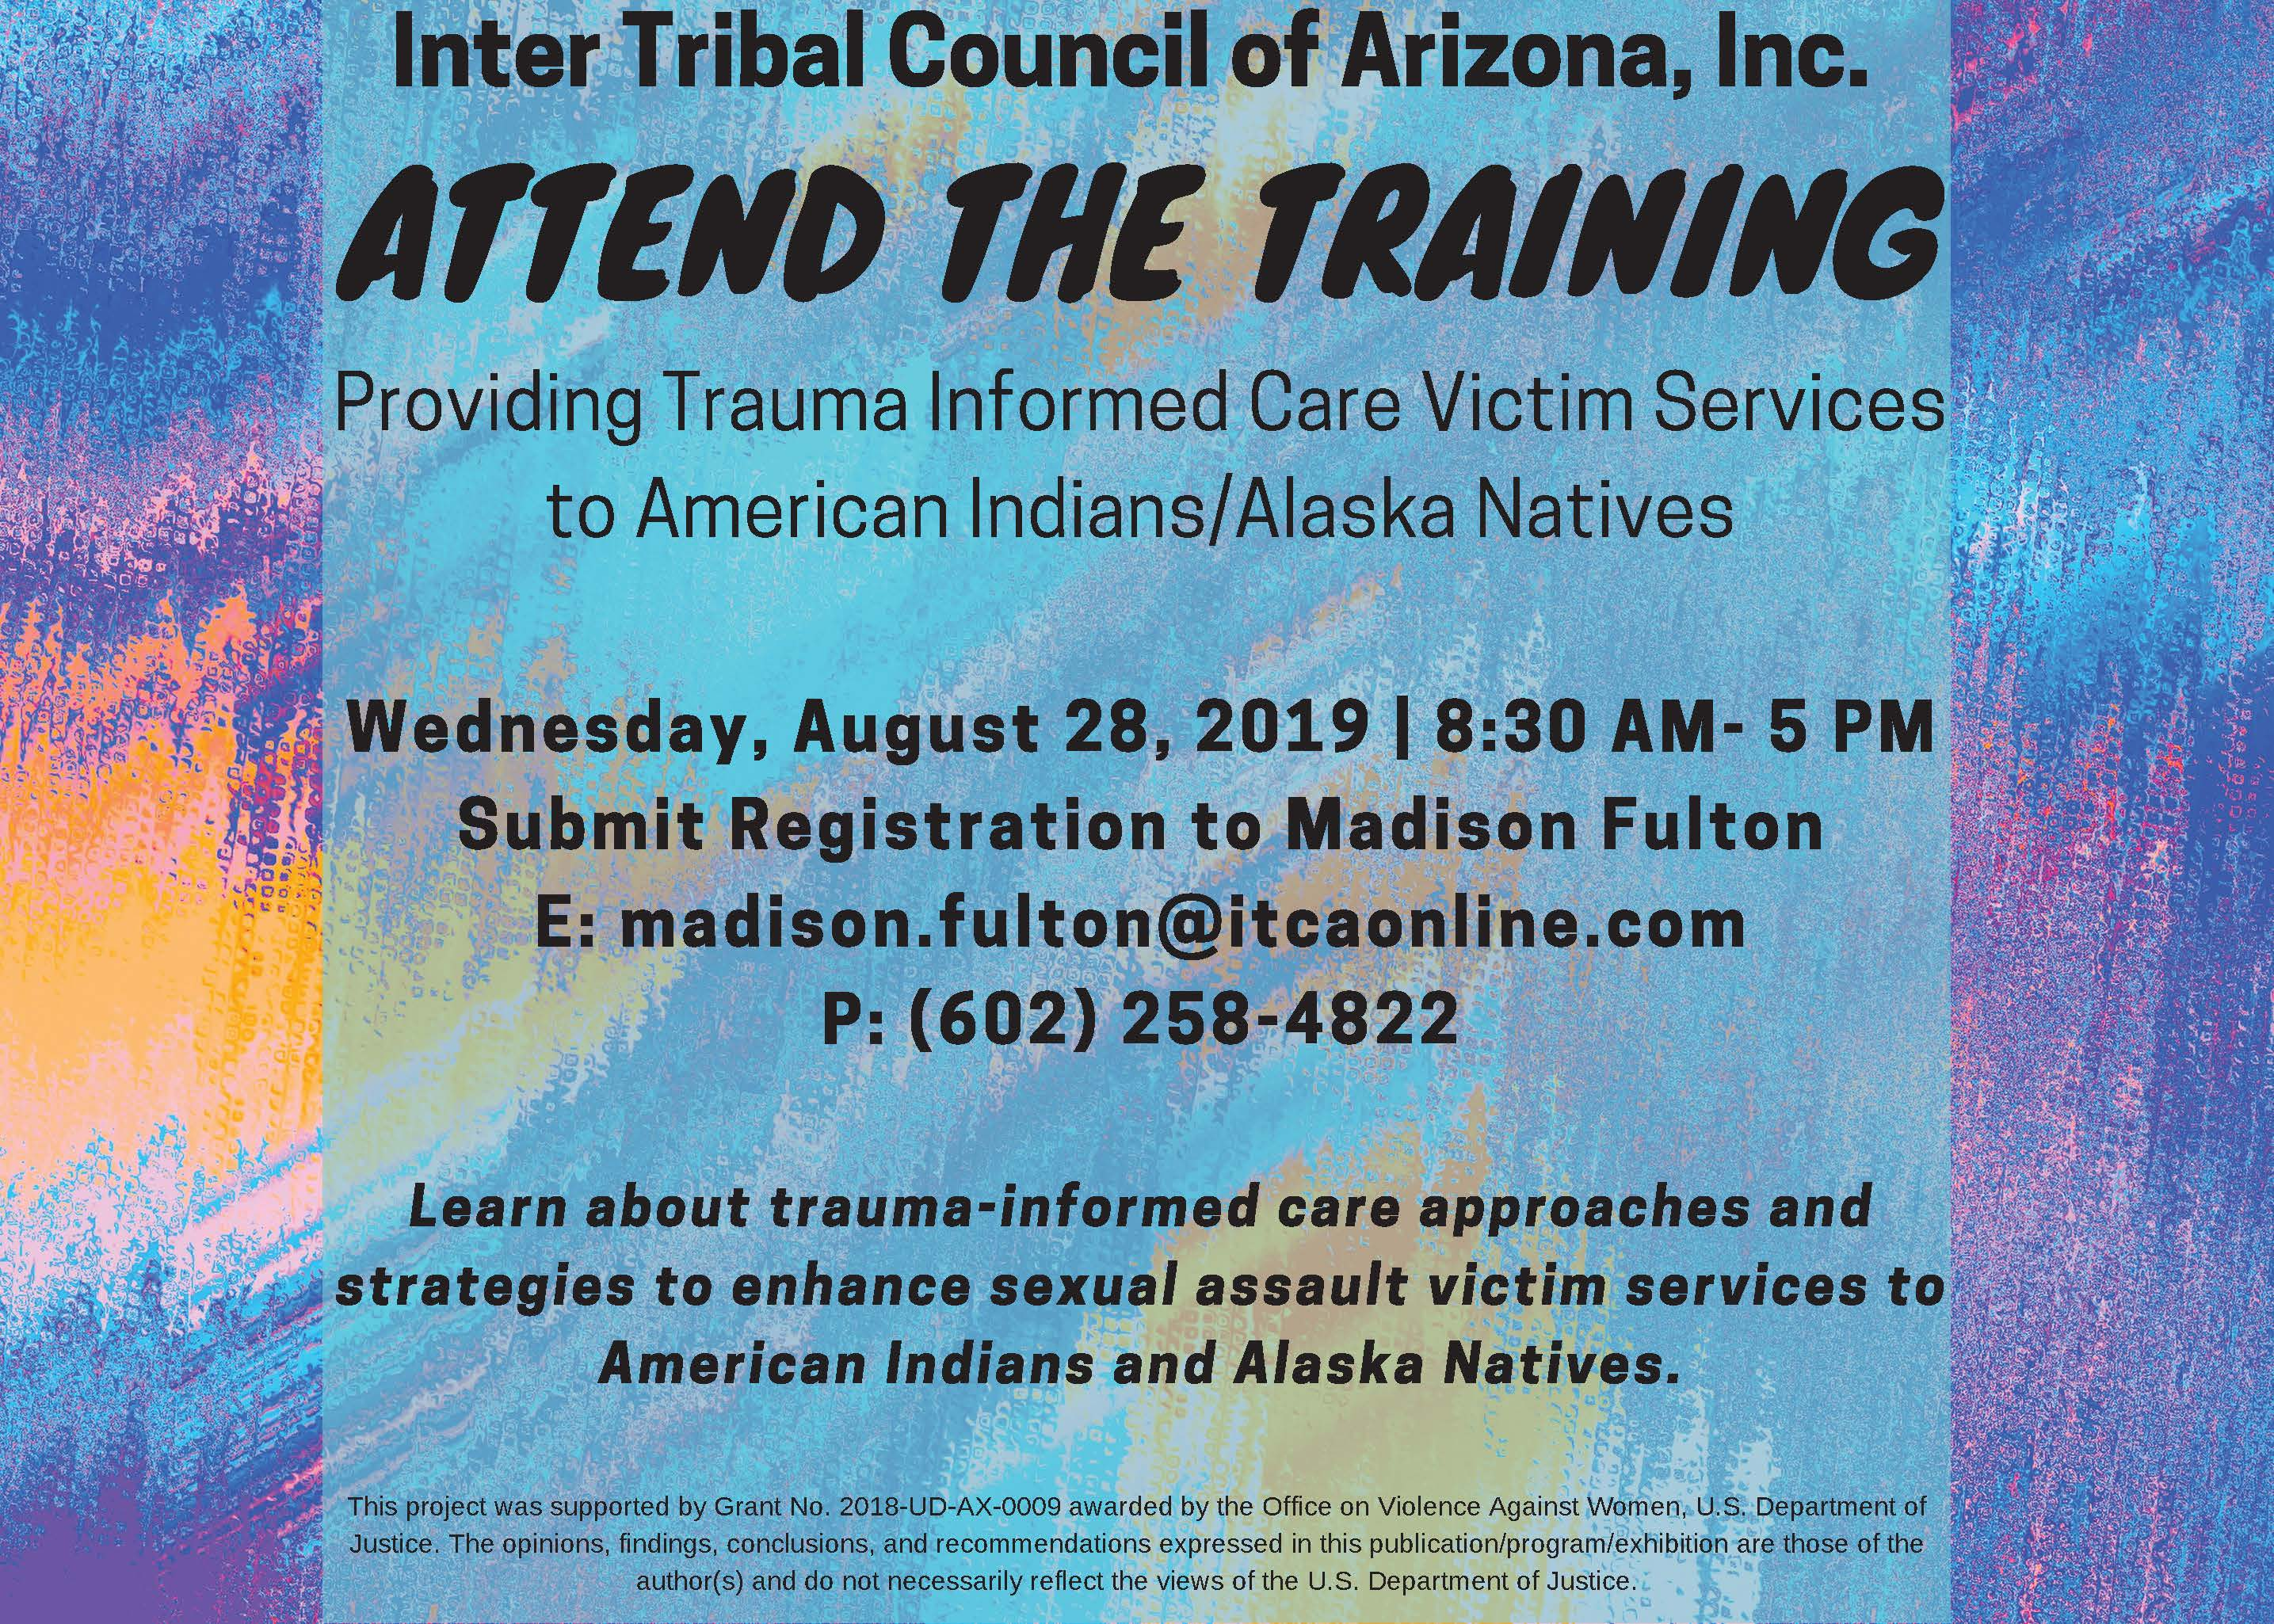 Providing Trauma Informed Care Victim Services to American Indians/Alaska Natives